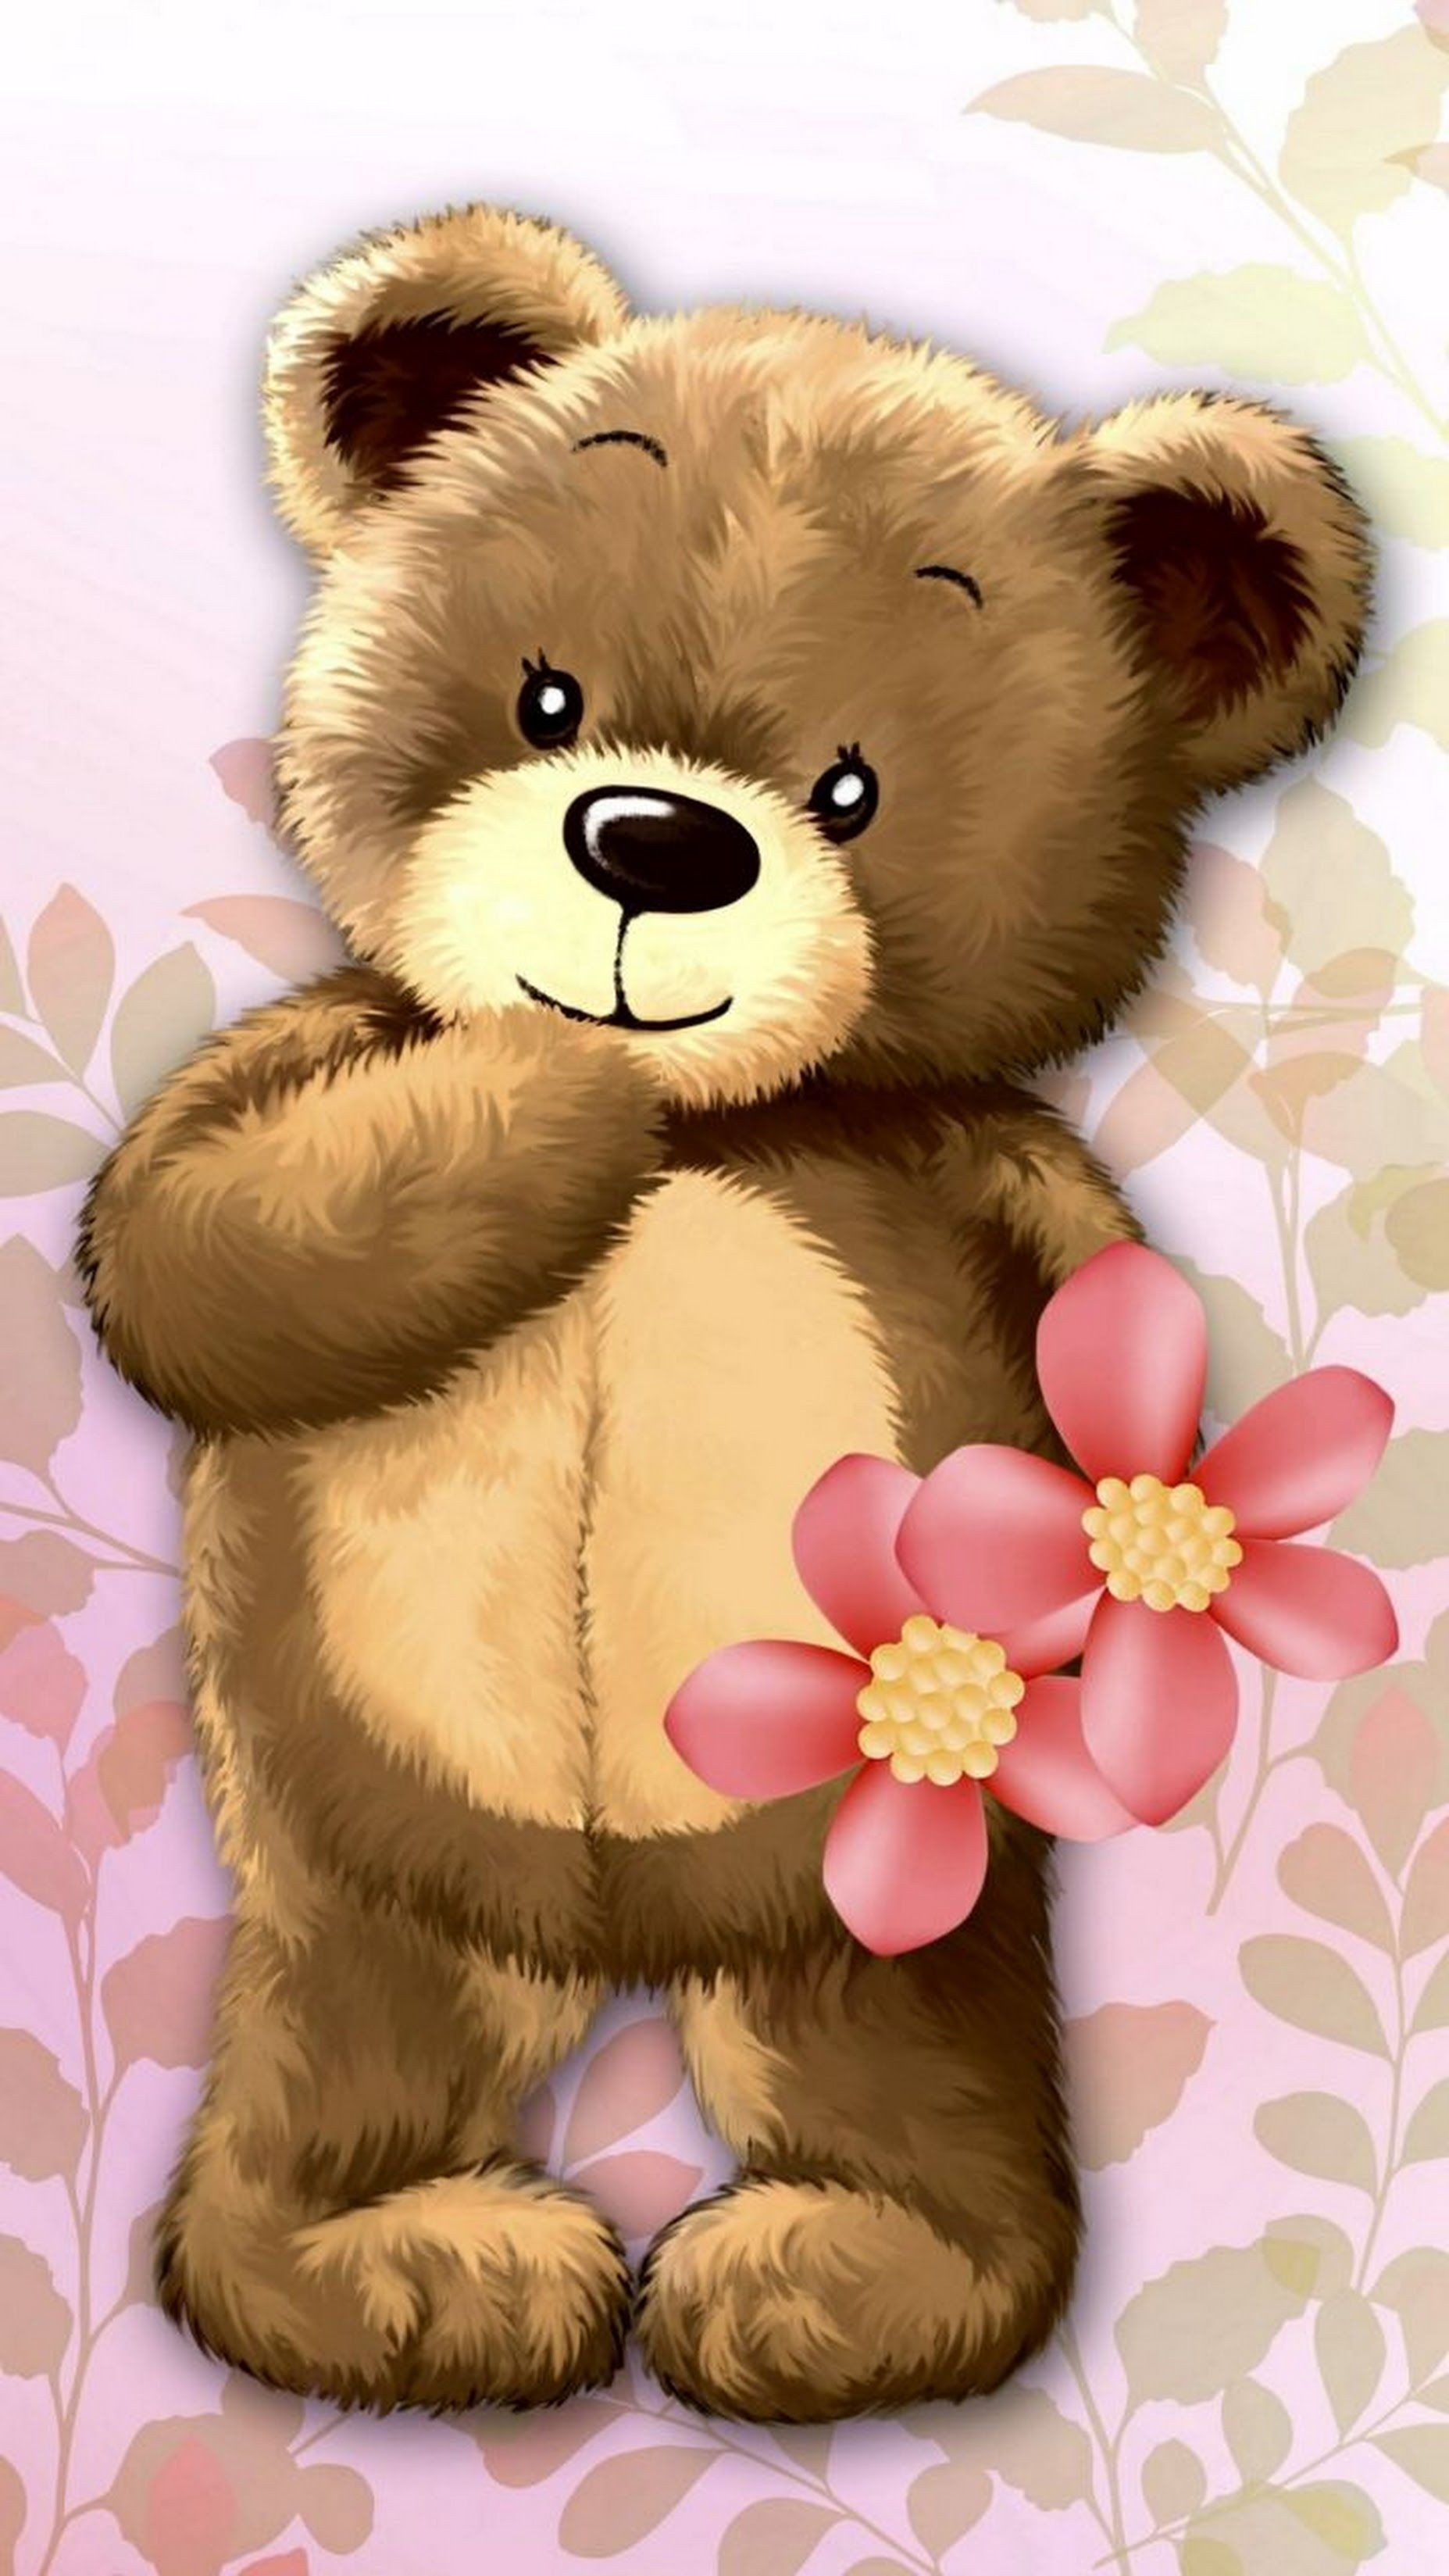 Teddy Bear Wallpaper Image By Debbie Minton On HOW CUTE